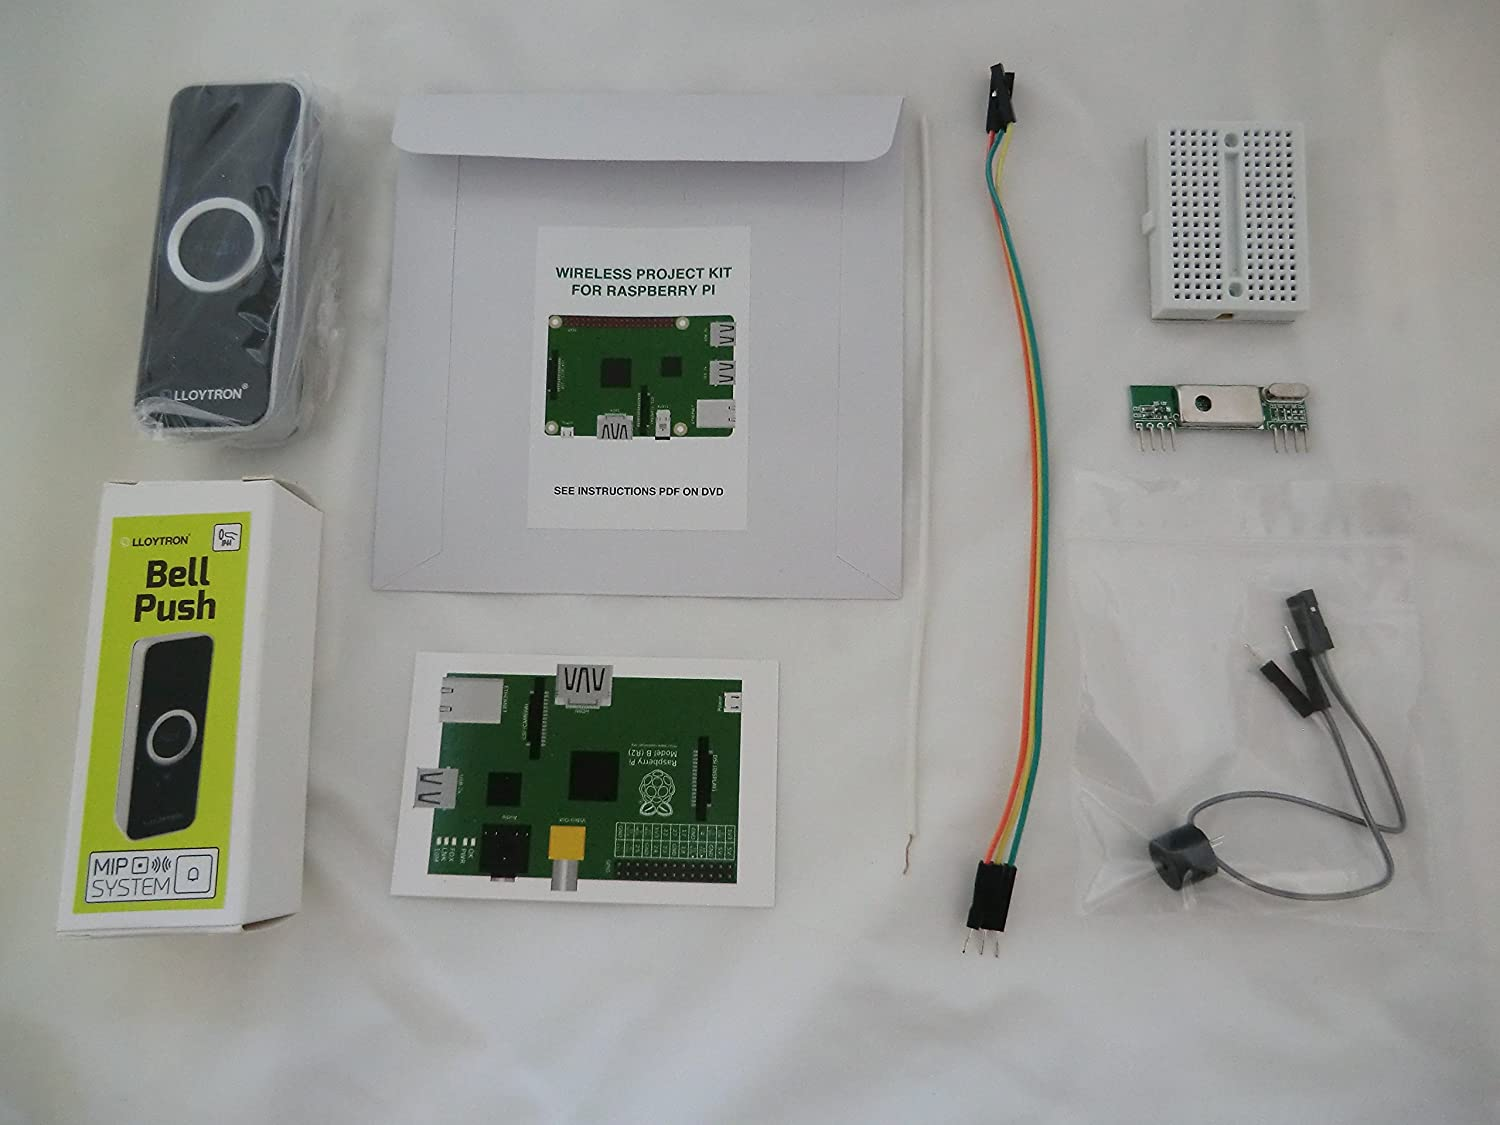 Internet & MP3 Doorbell (black) project kit for Raspberry Pi 3, Pi 2, B+,  A+, B and A models  Kit includes a Lloytron MIP wireless doorbell & 433MHz